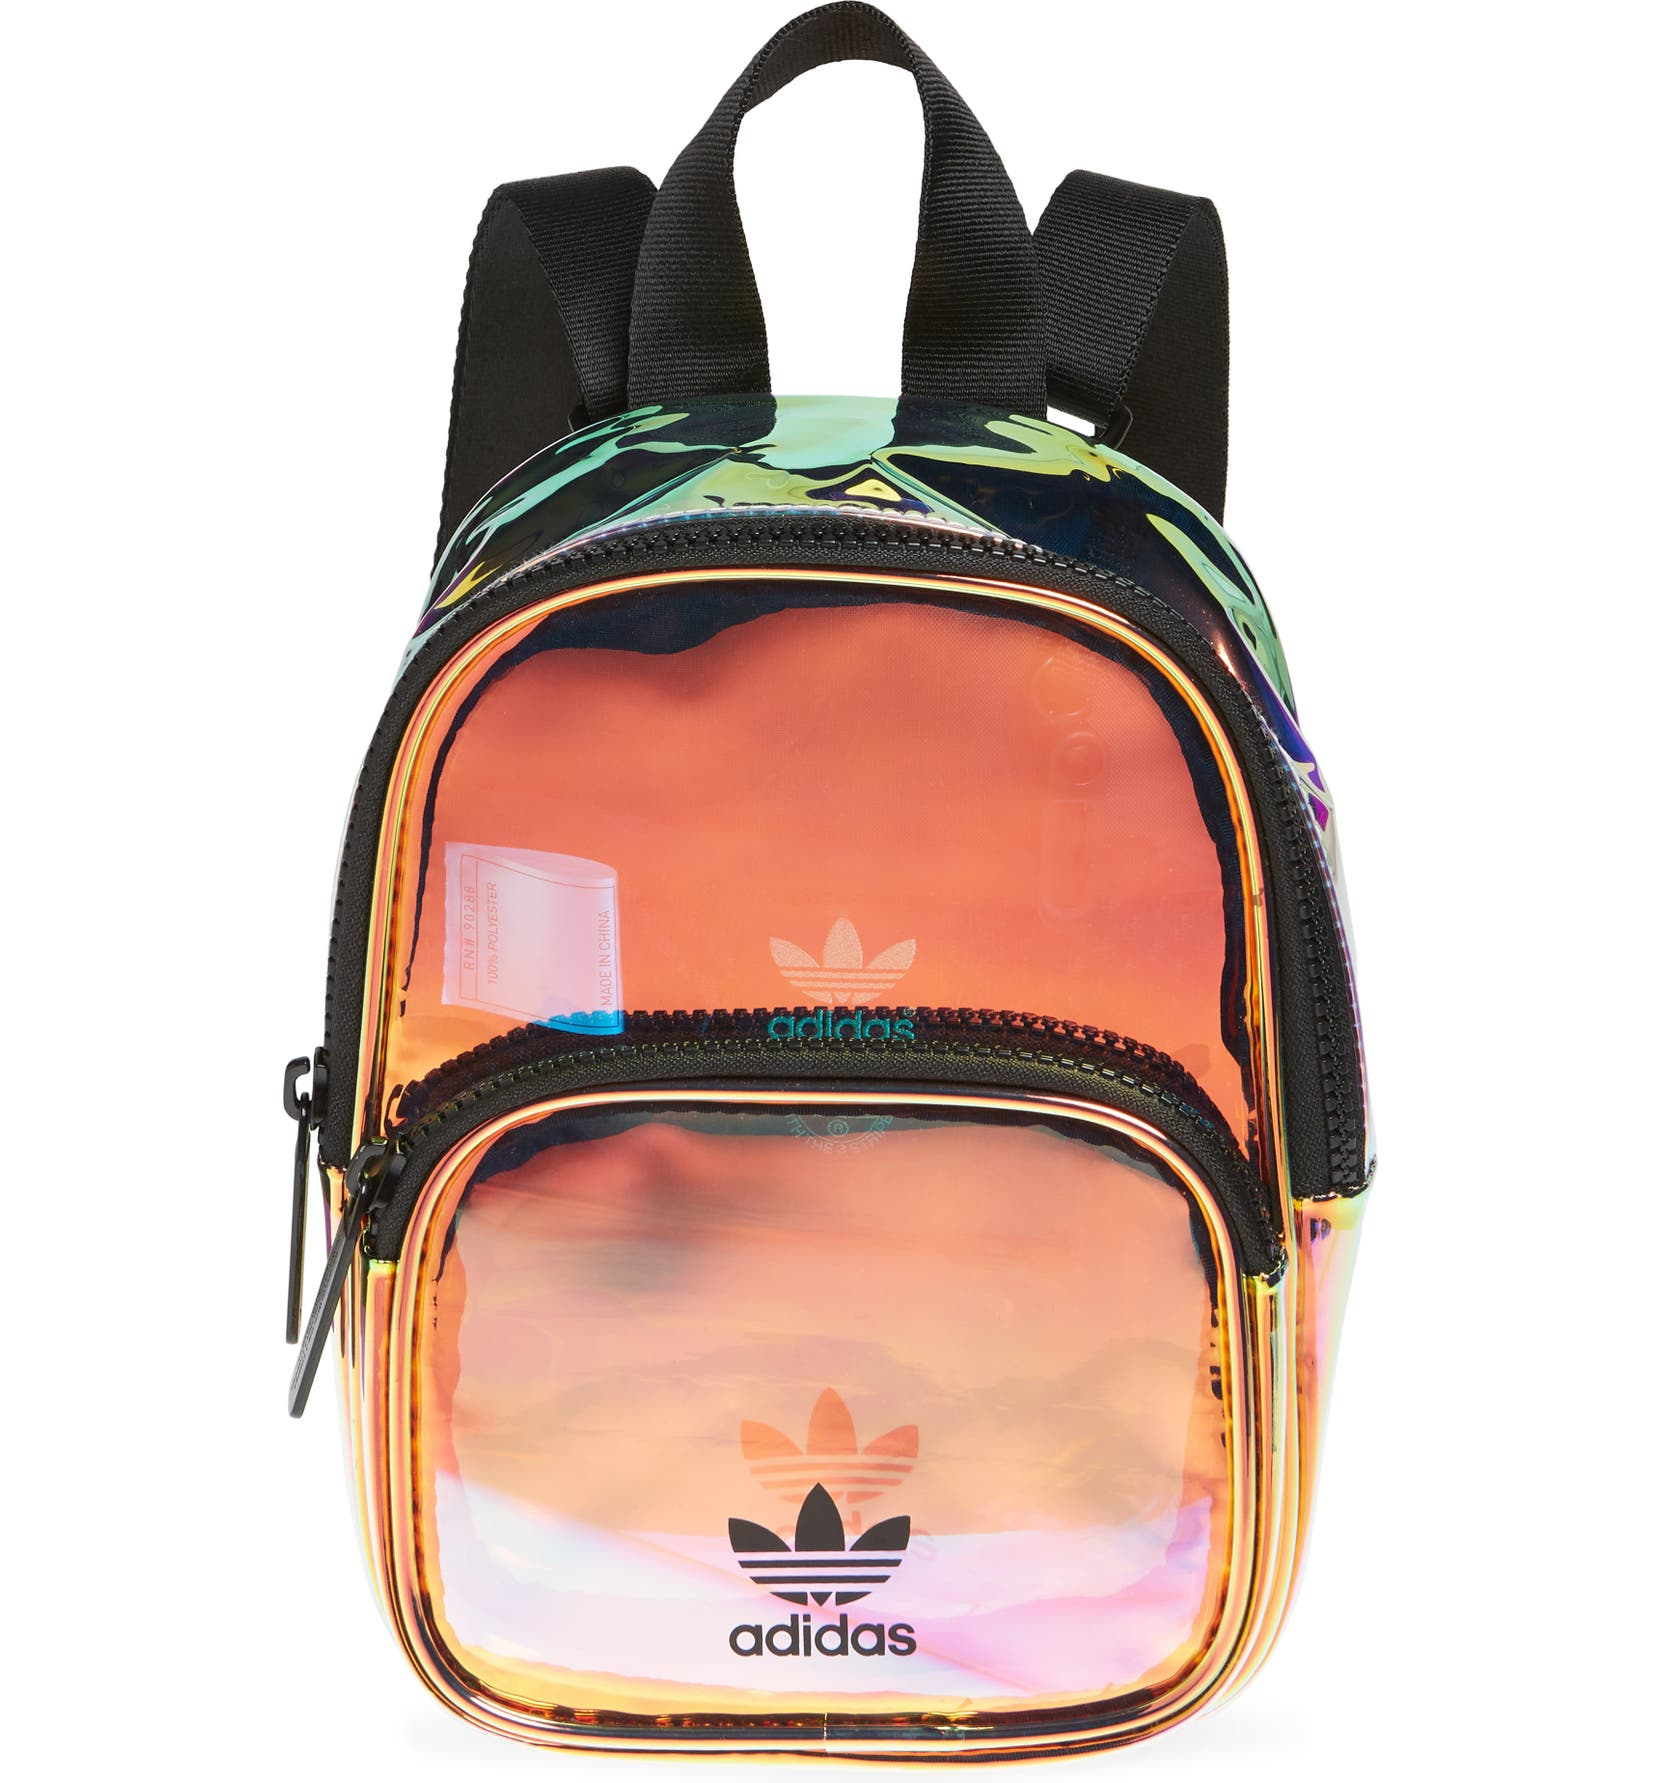 7d42ba052d adidas Ori Mini Holographic Clear Backpack